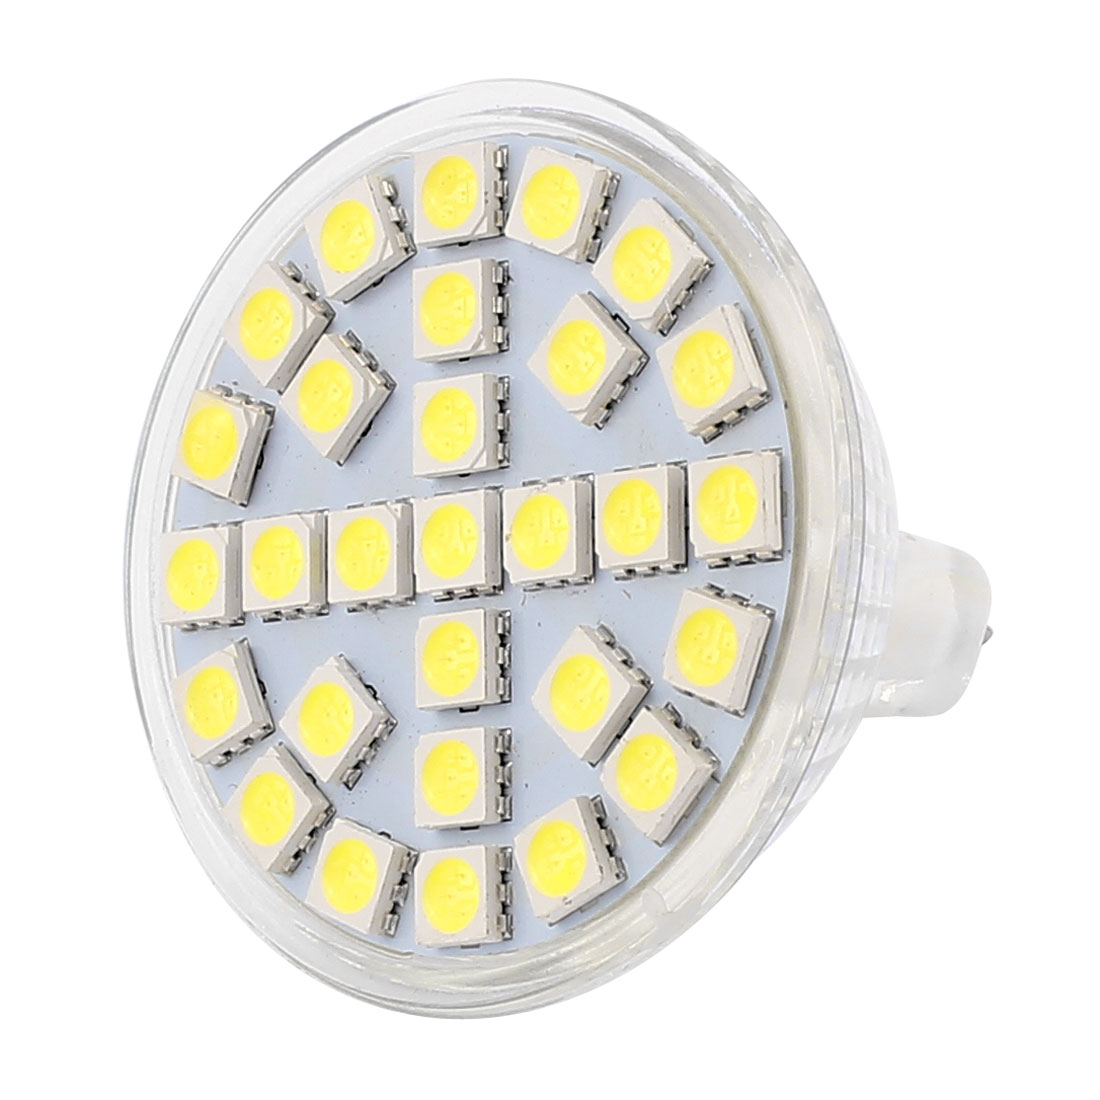 MR16 SMD5050 29LEDs 5W Glass Energy Saving LED Spotlight Lamp Bulb White AC 220V